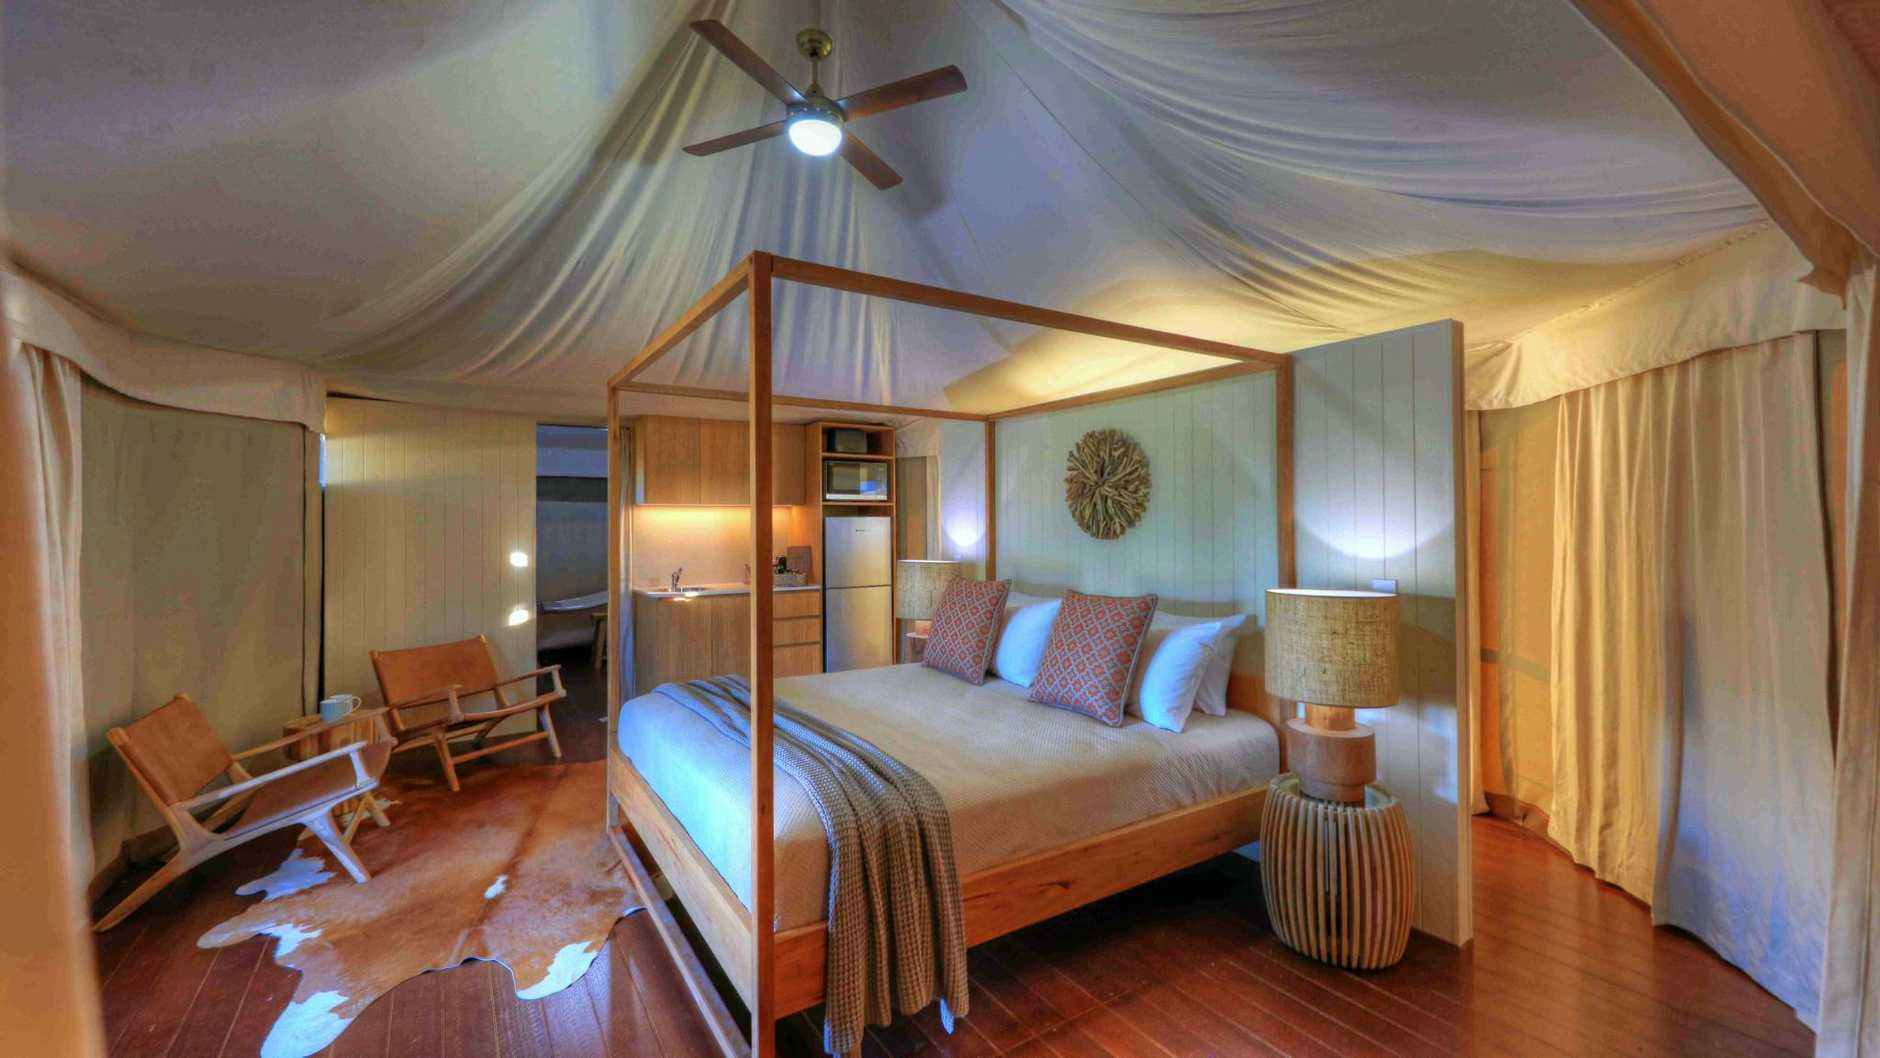 Inside one of the beautiful safari tents.